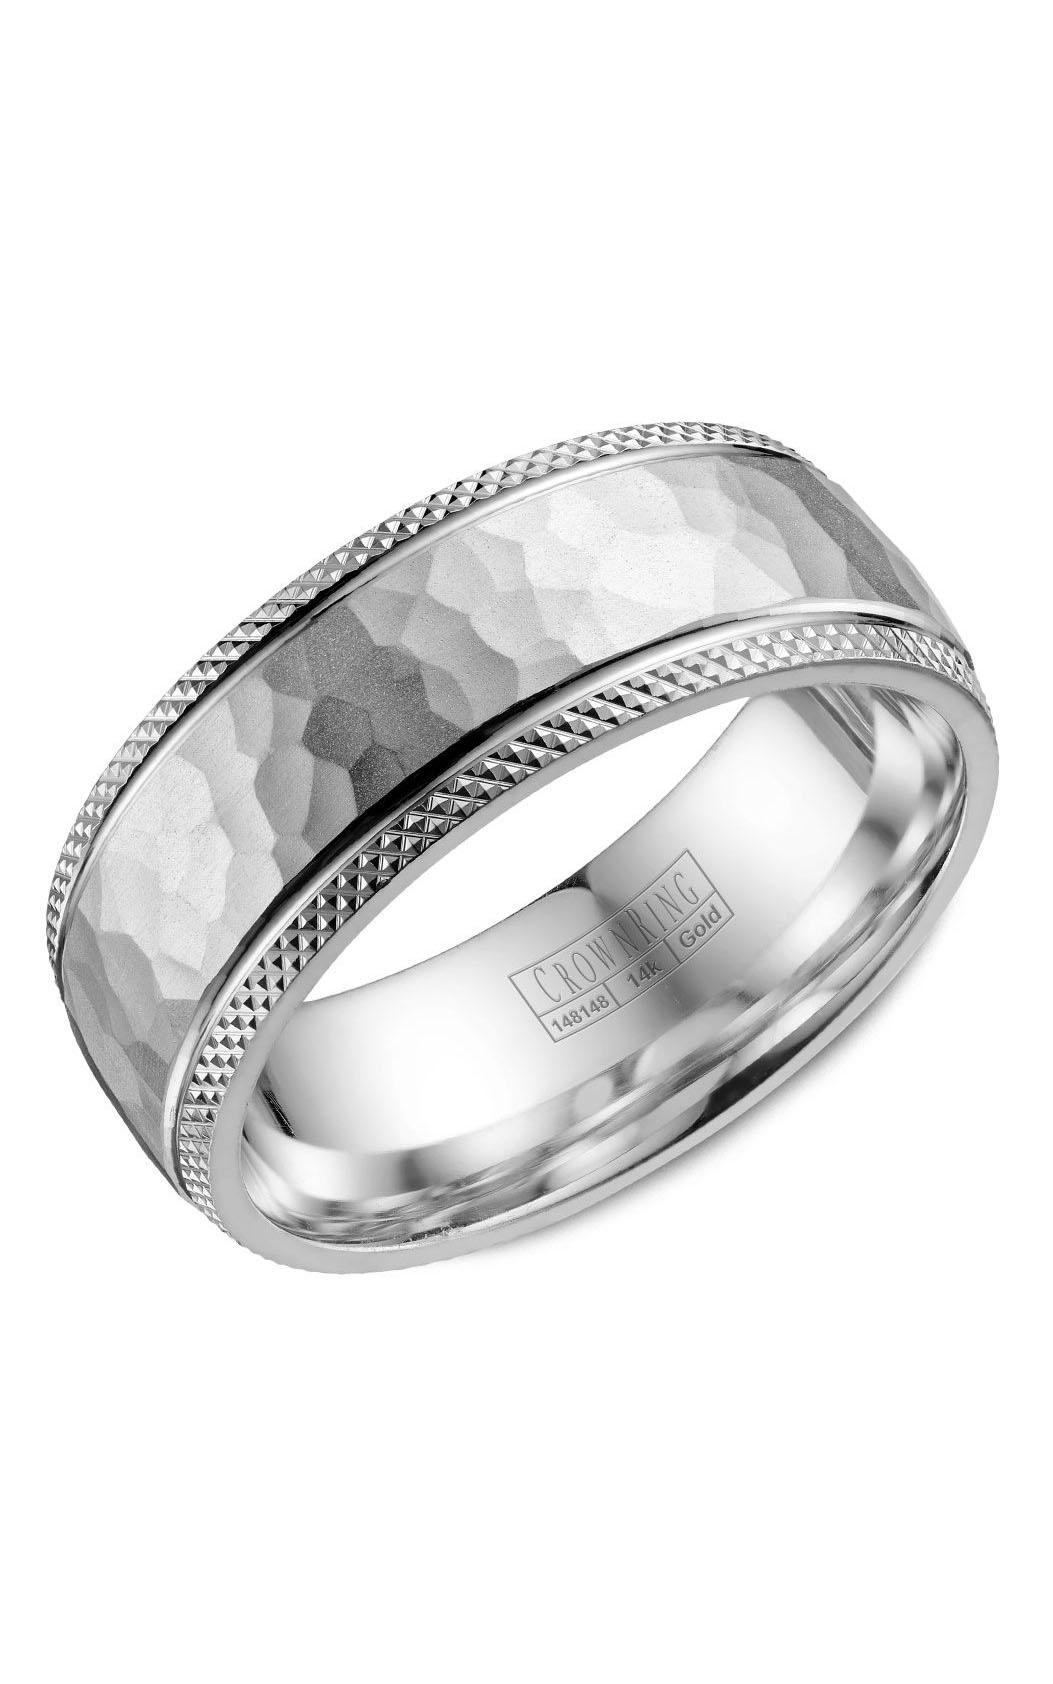 Crown Ring Men's Wedding Band WB-035C8W product image